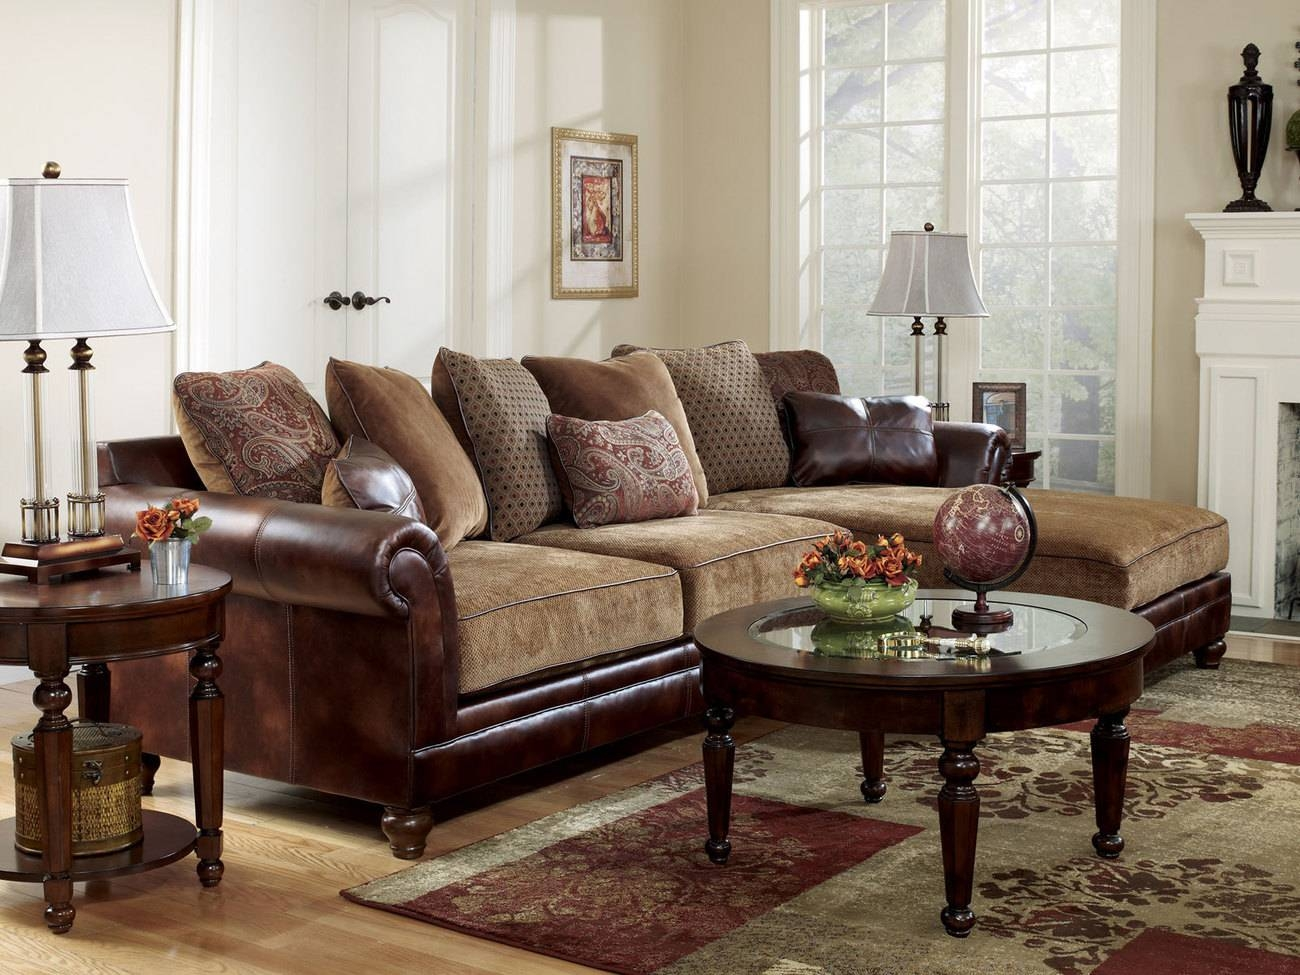 Sofas Center : Rustic Sectional Sofas Sofa Chicago Sleeper throughout Chenille Sectional Sofas With Chaise (Image 15 of 15)